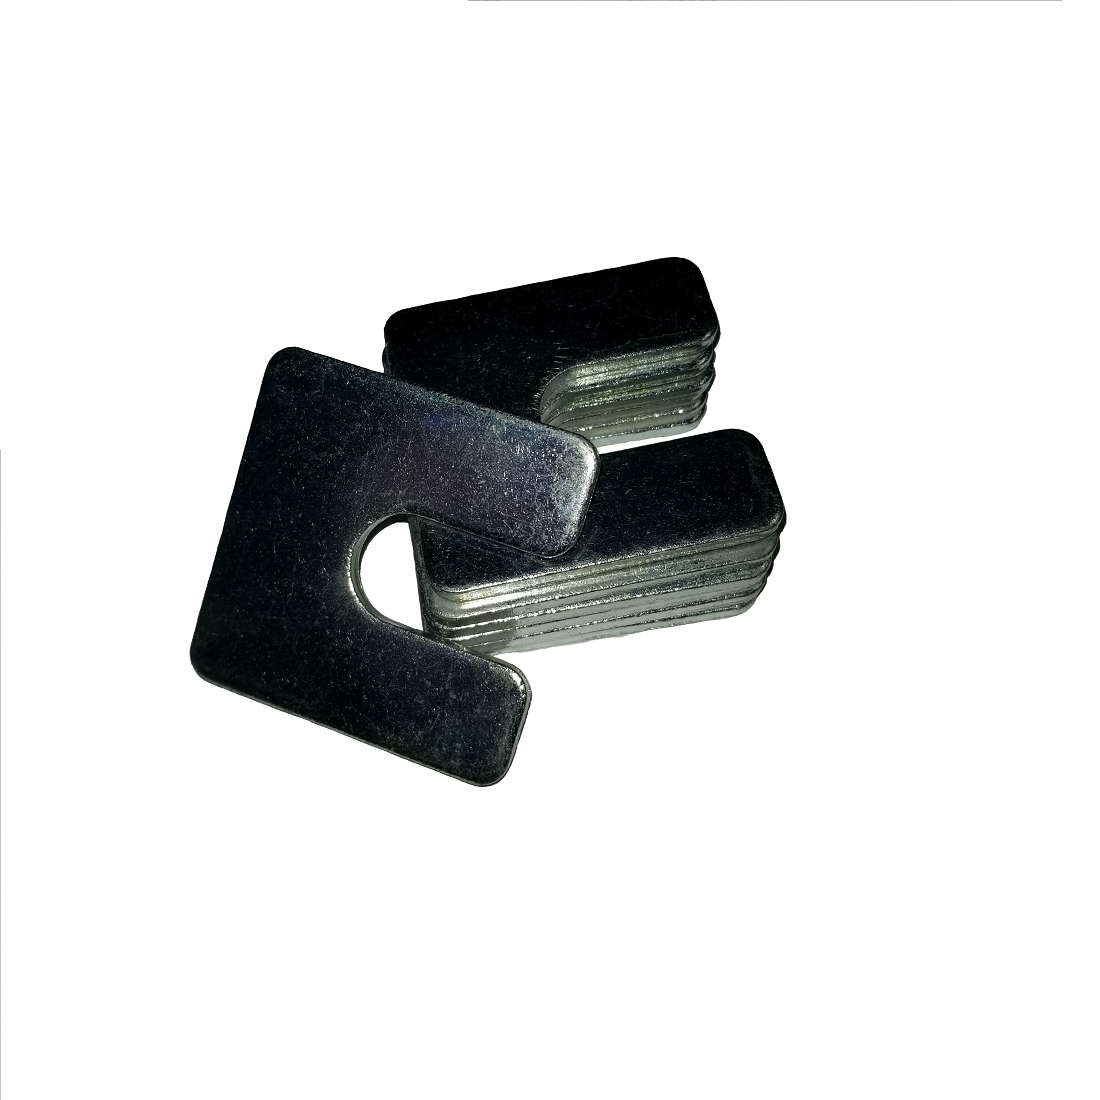 Slotted Square Washer - 0.875 ID, 2.400 OD, 0.015 Thick, Low Carbon Steel - Soft